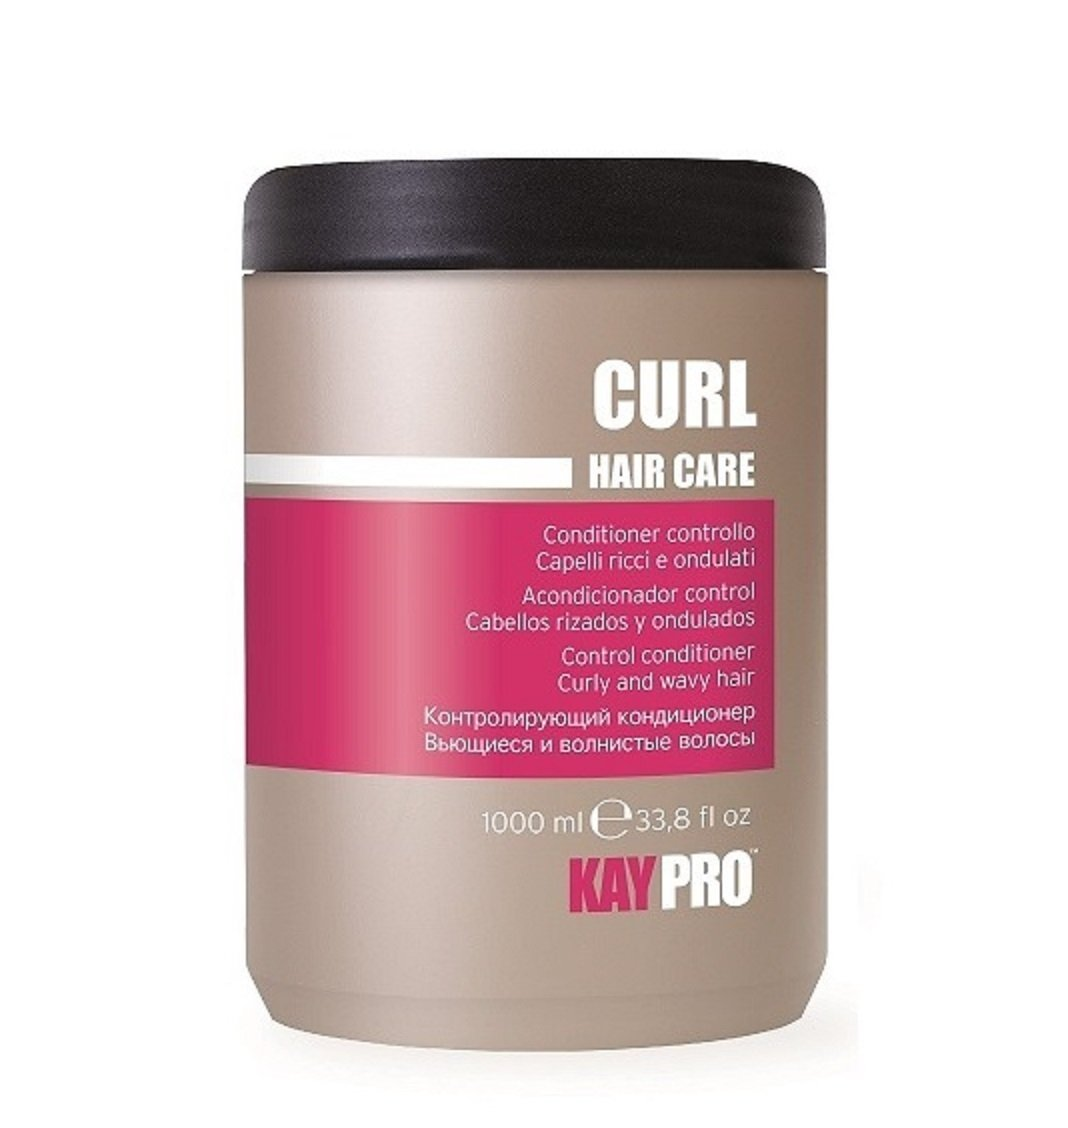 HAIR CARE CURL CONDITIONER 1000 ML